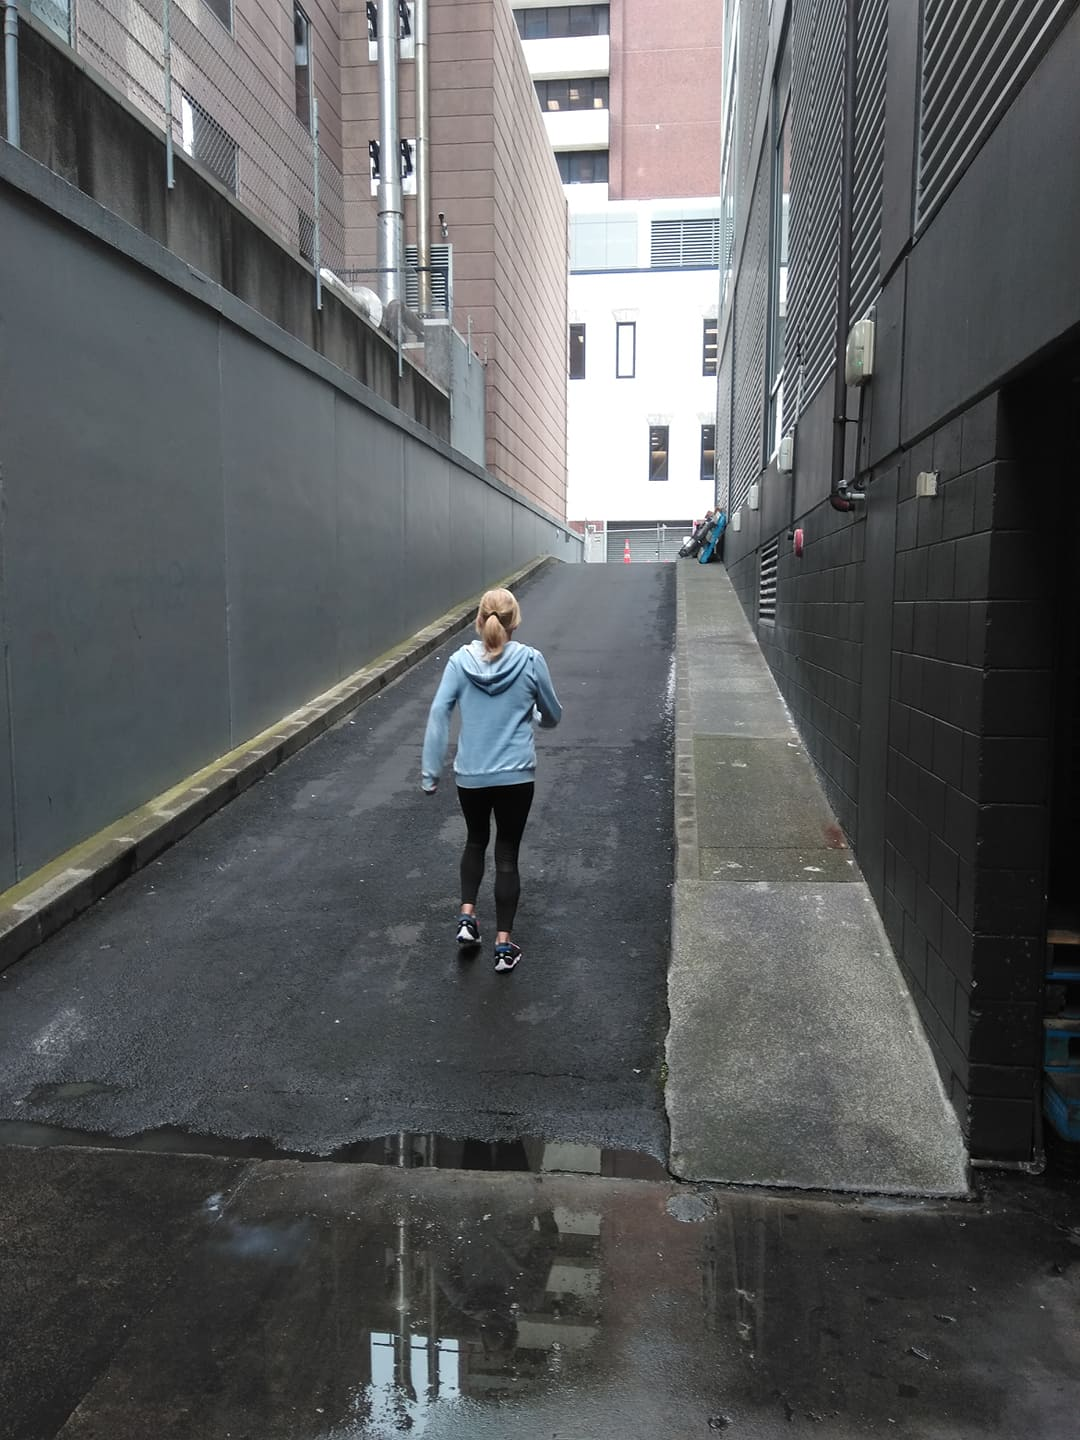 lady in blue top walking up a ramp